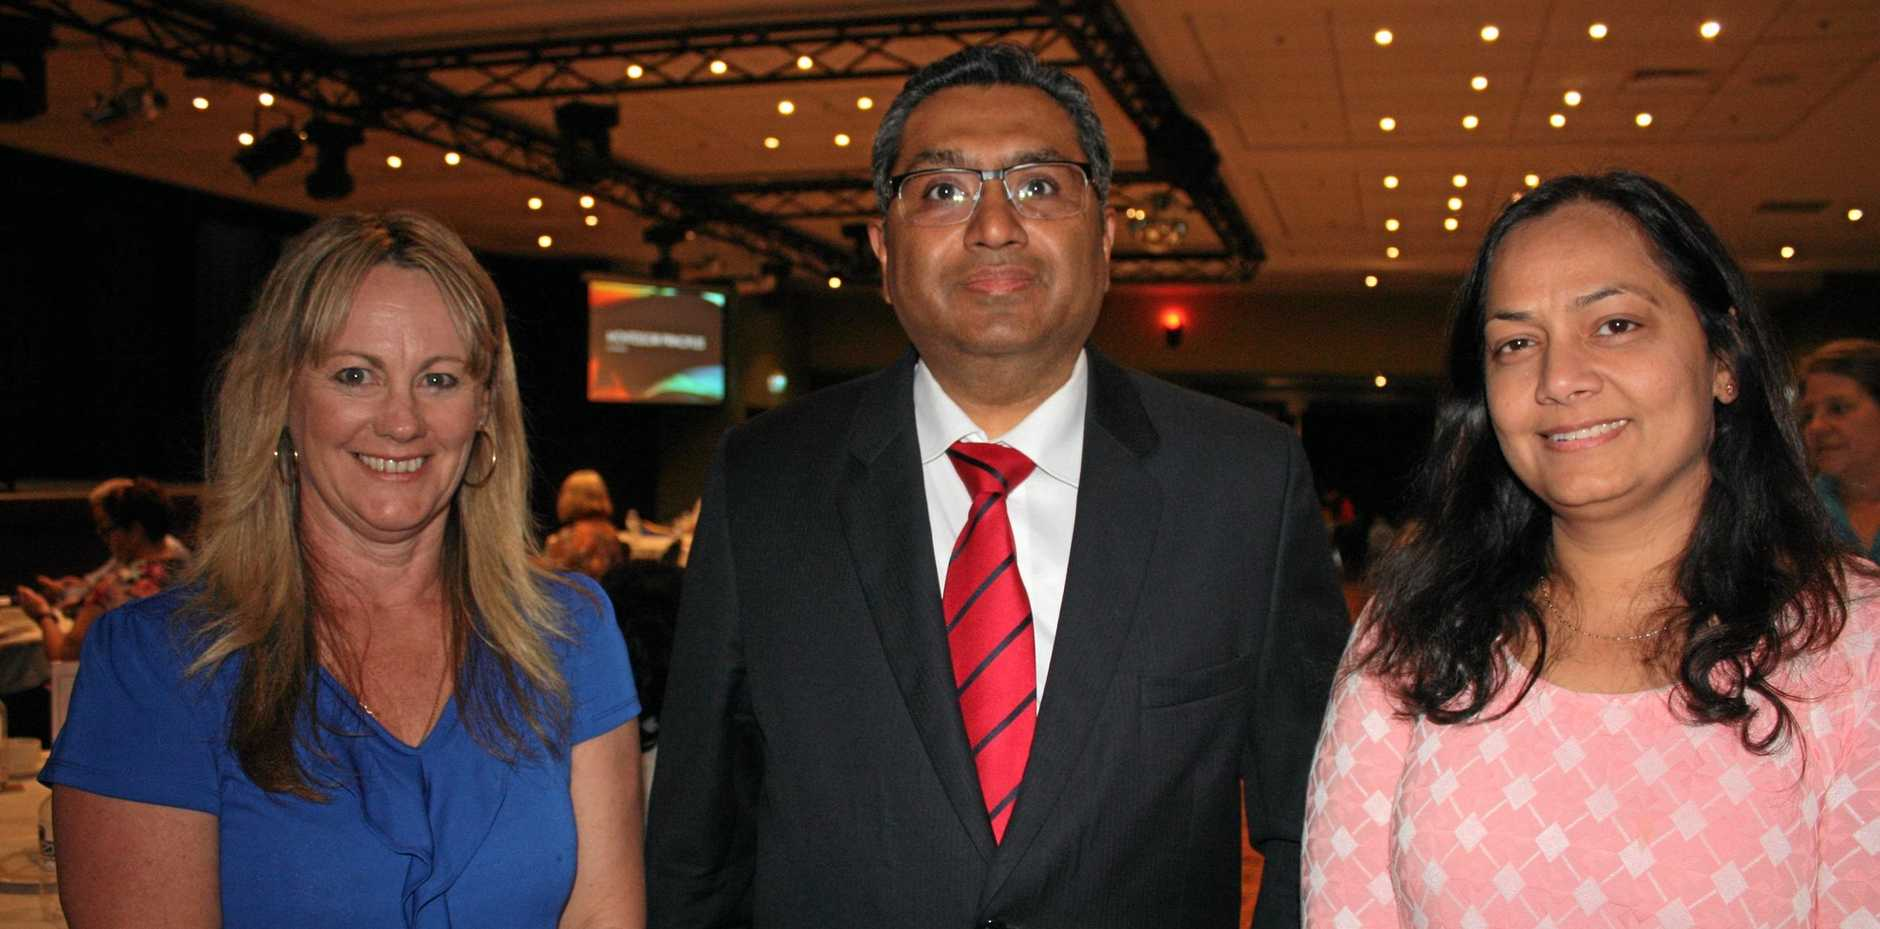 Journey Through Dementia keynote speaker, geriatrician Dr Vaibhav Tyagi, his wife, GP Dr Deepti Tyagi and event organiser Jodie Kennedy.